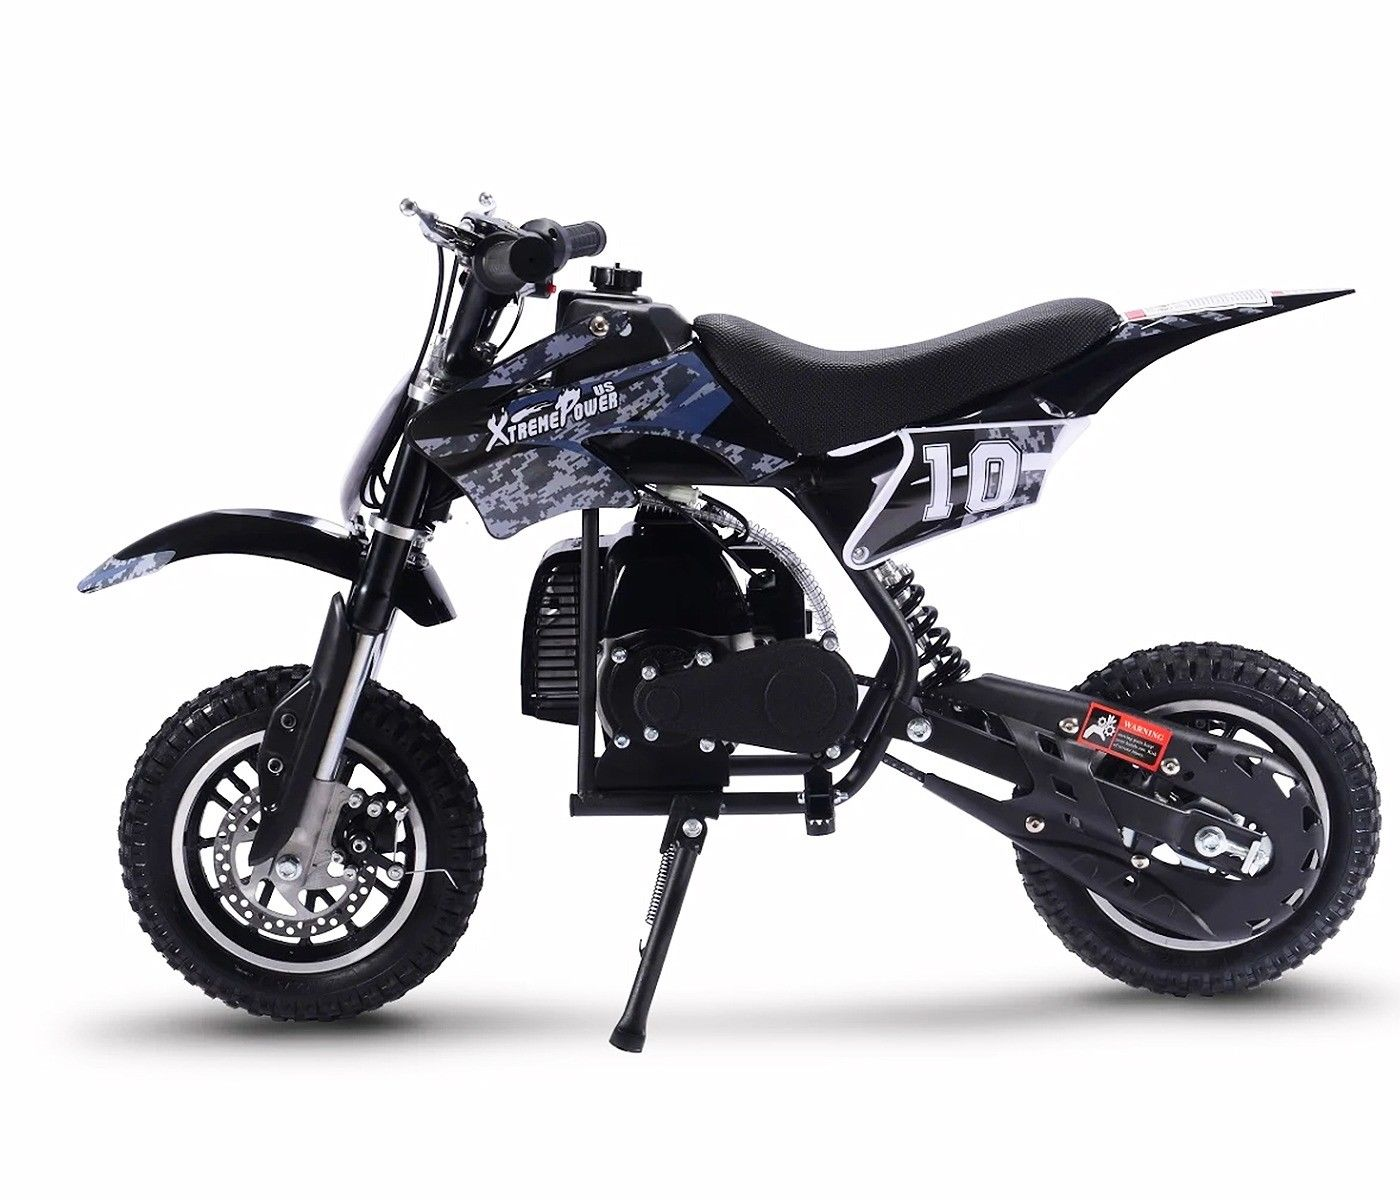 49cc-2-Stroke-Gas-Motorized-Mini-Dirt-devil-scooter-Bike-Pocket-Bike-Pit thumbnail 11